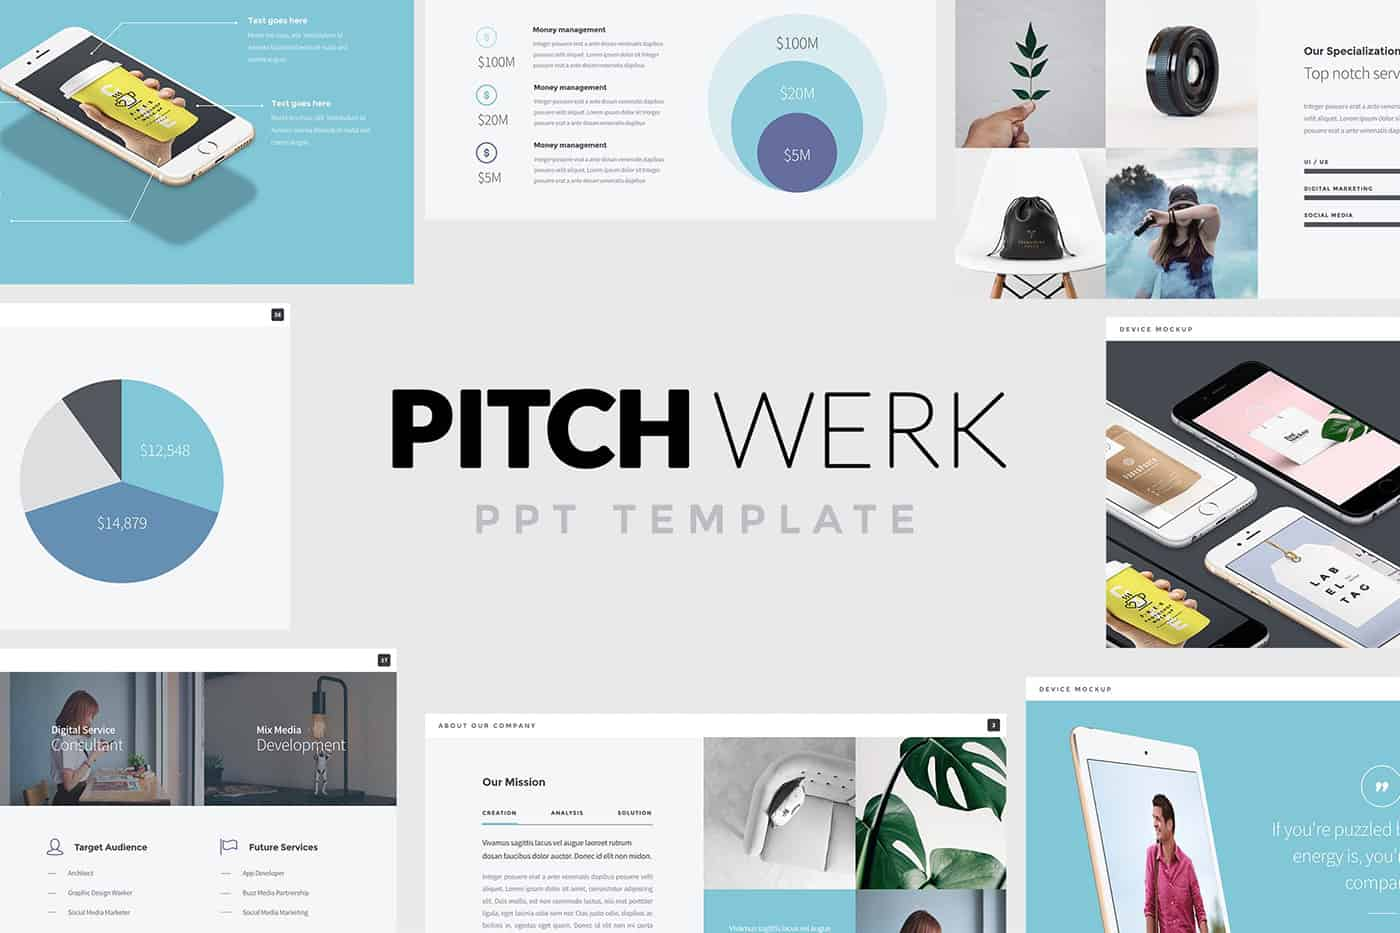 c43f7d77e054b29bd187631738d6dd15 Pitch Deck Design: 10 Tips to Stand Out design tips